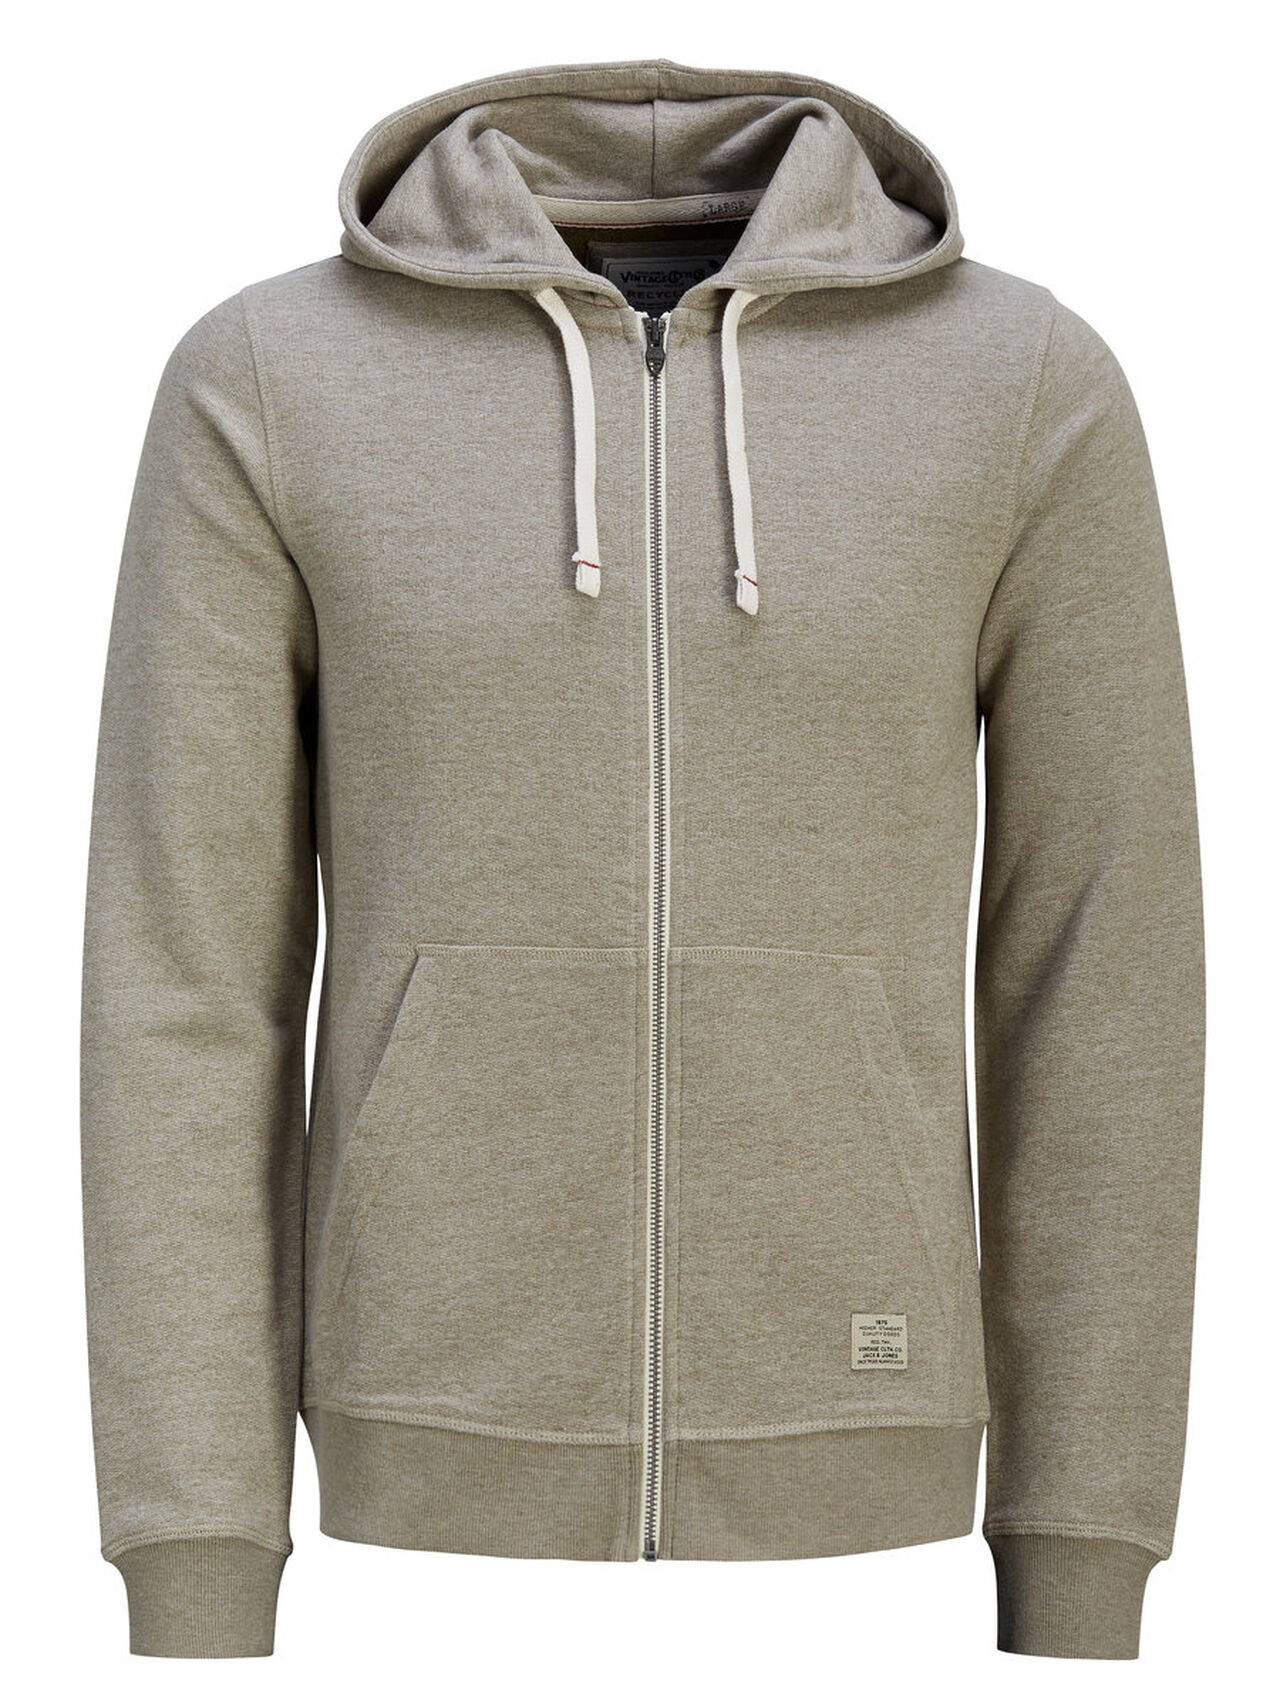 JACK & JONES Hooded Zip Through Sweatshirt Men Green Aluminum